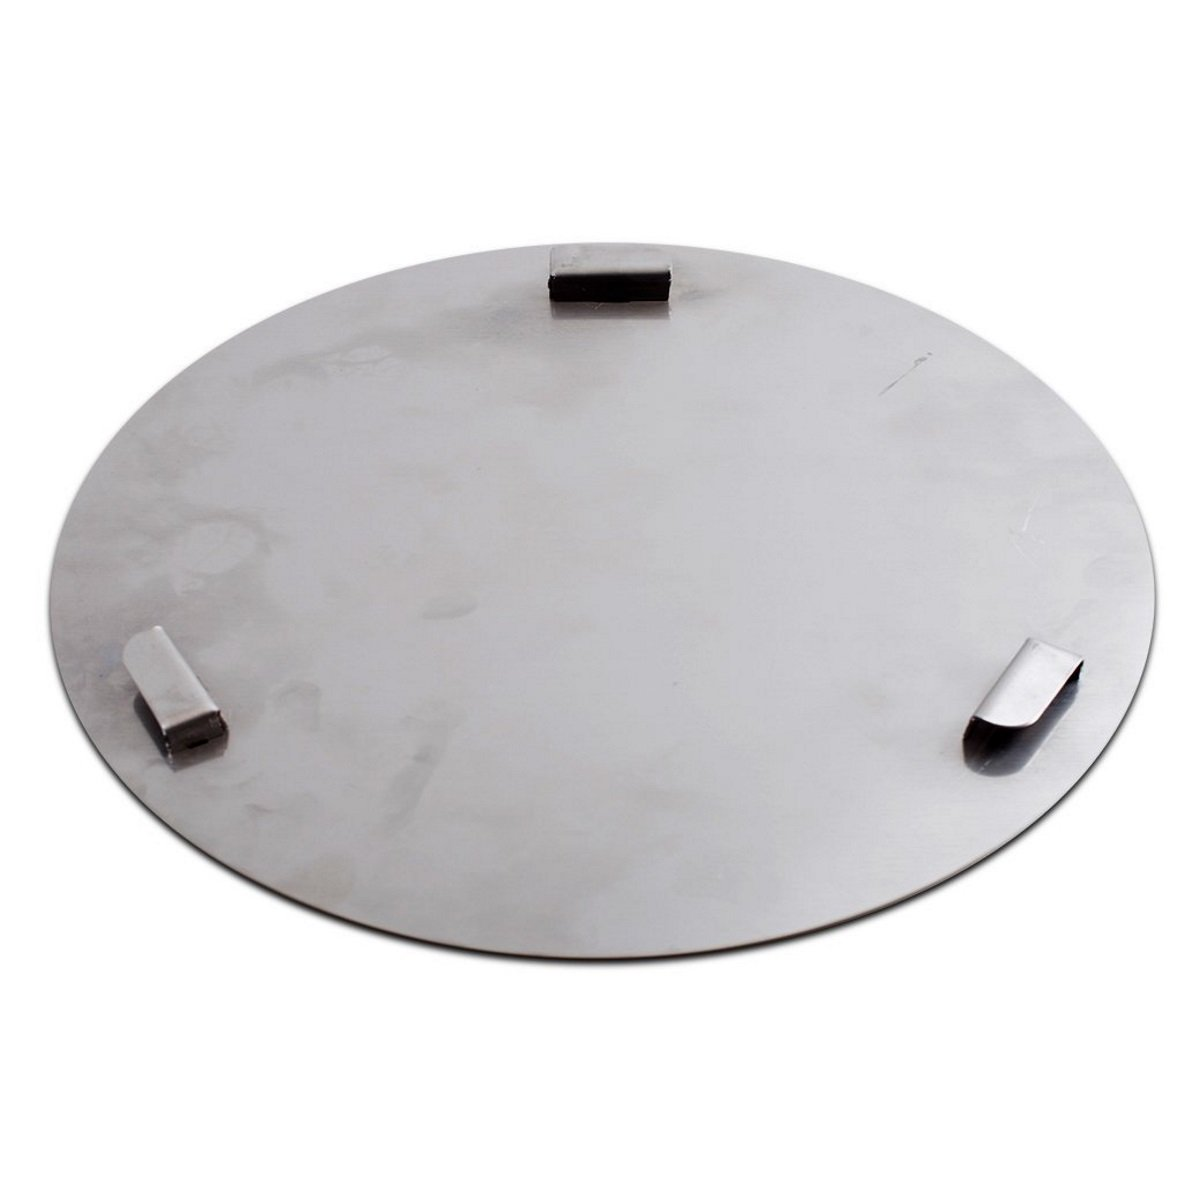 Ash Pan for the Classic Pit Barrel Cooker AC1007